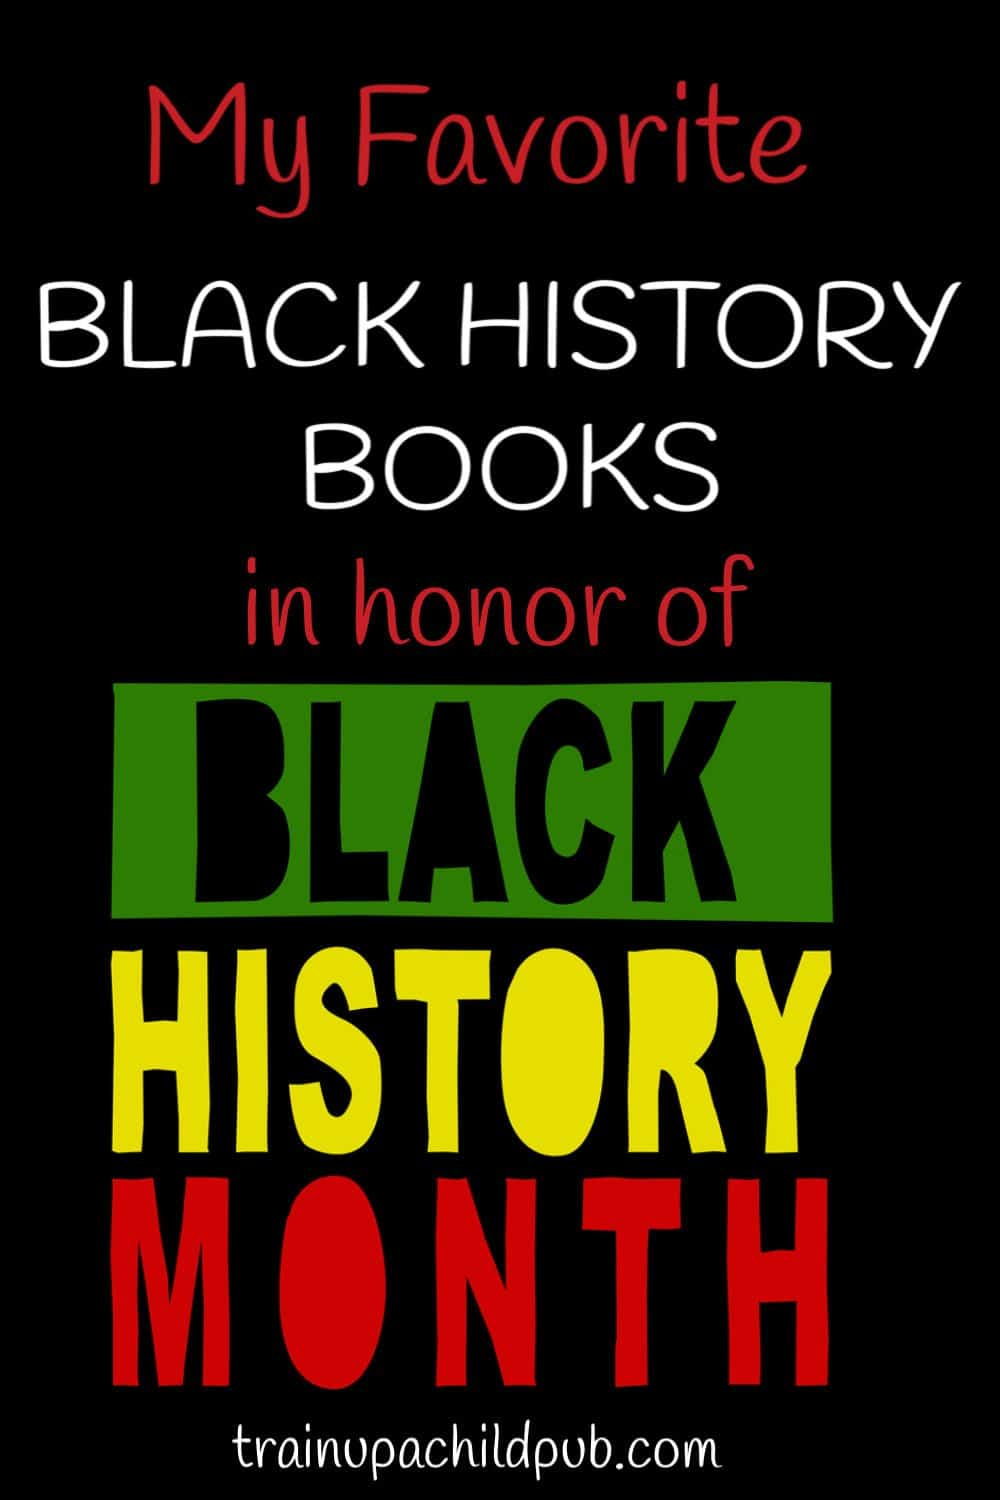 Black history books in honor of Black History Month